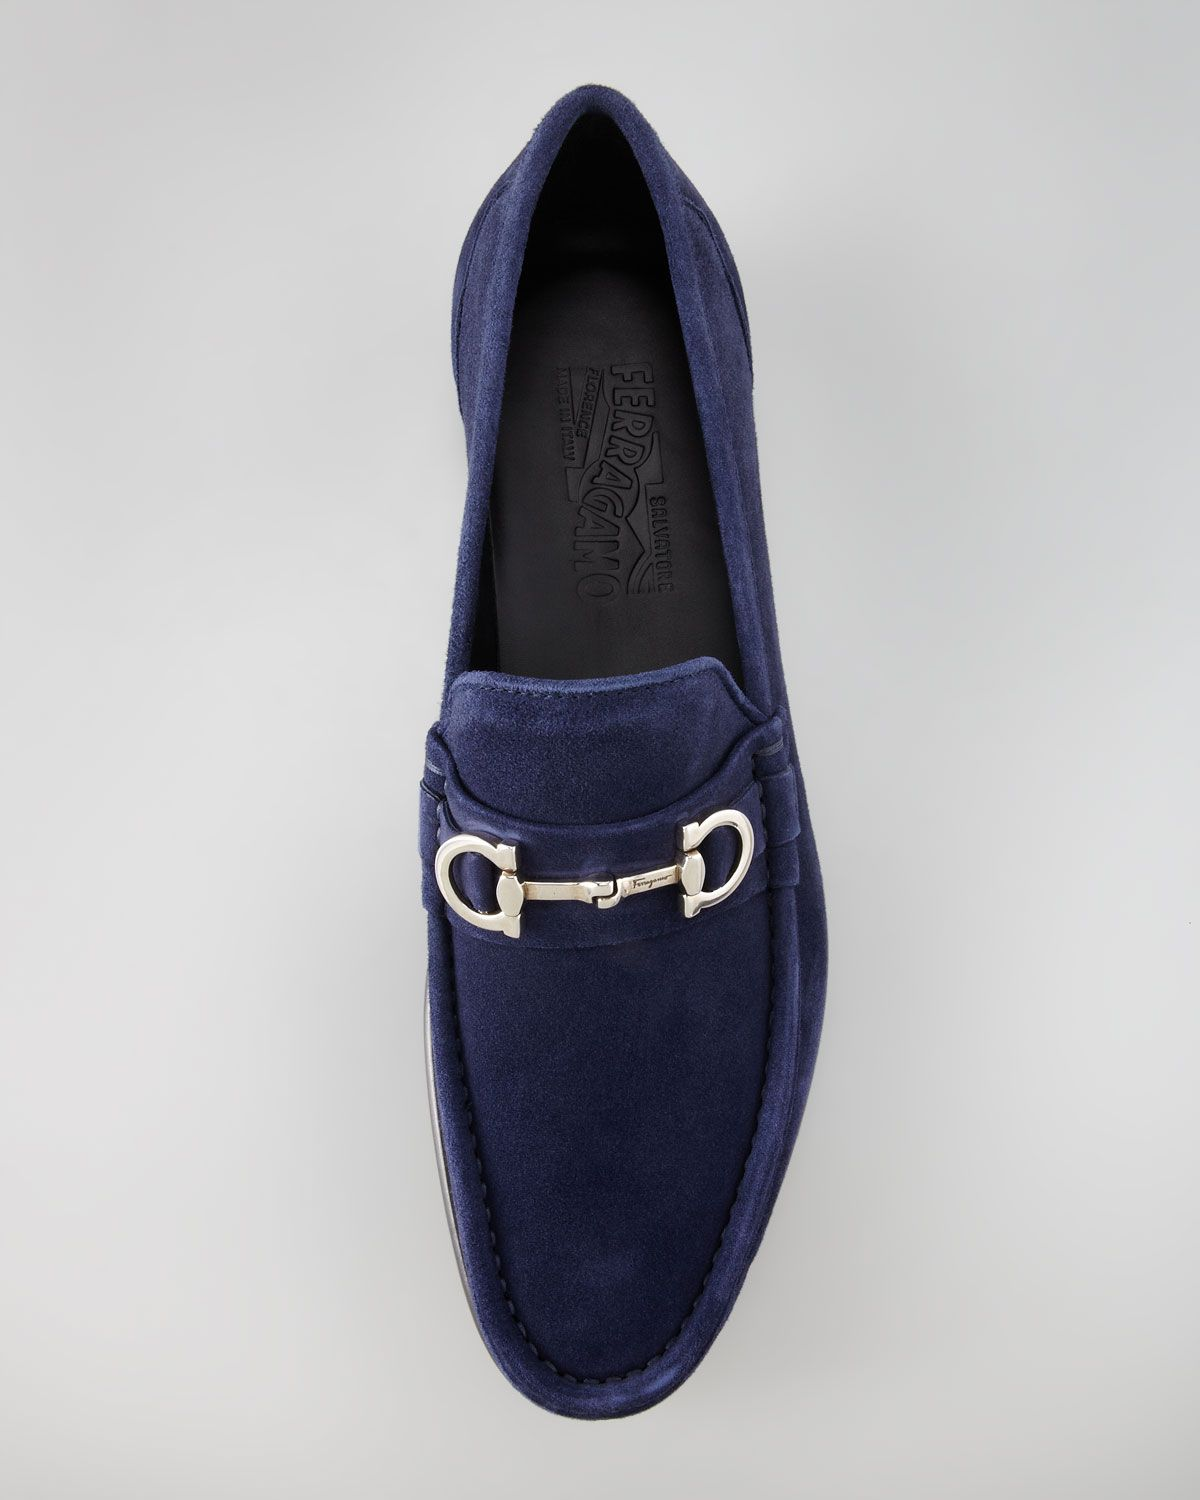 Giostra Suede Loafer, Navy | Mens shoes